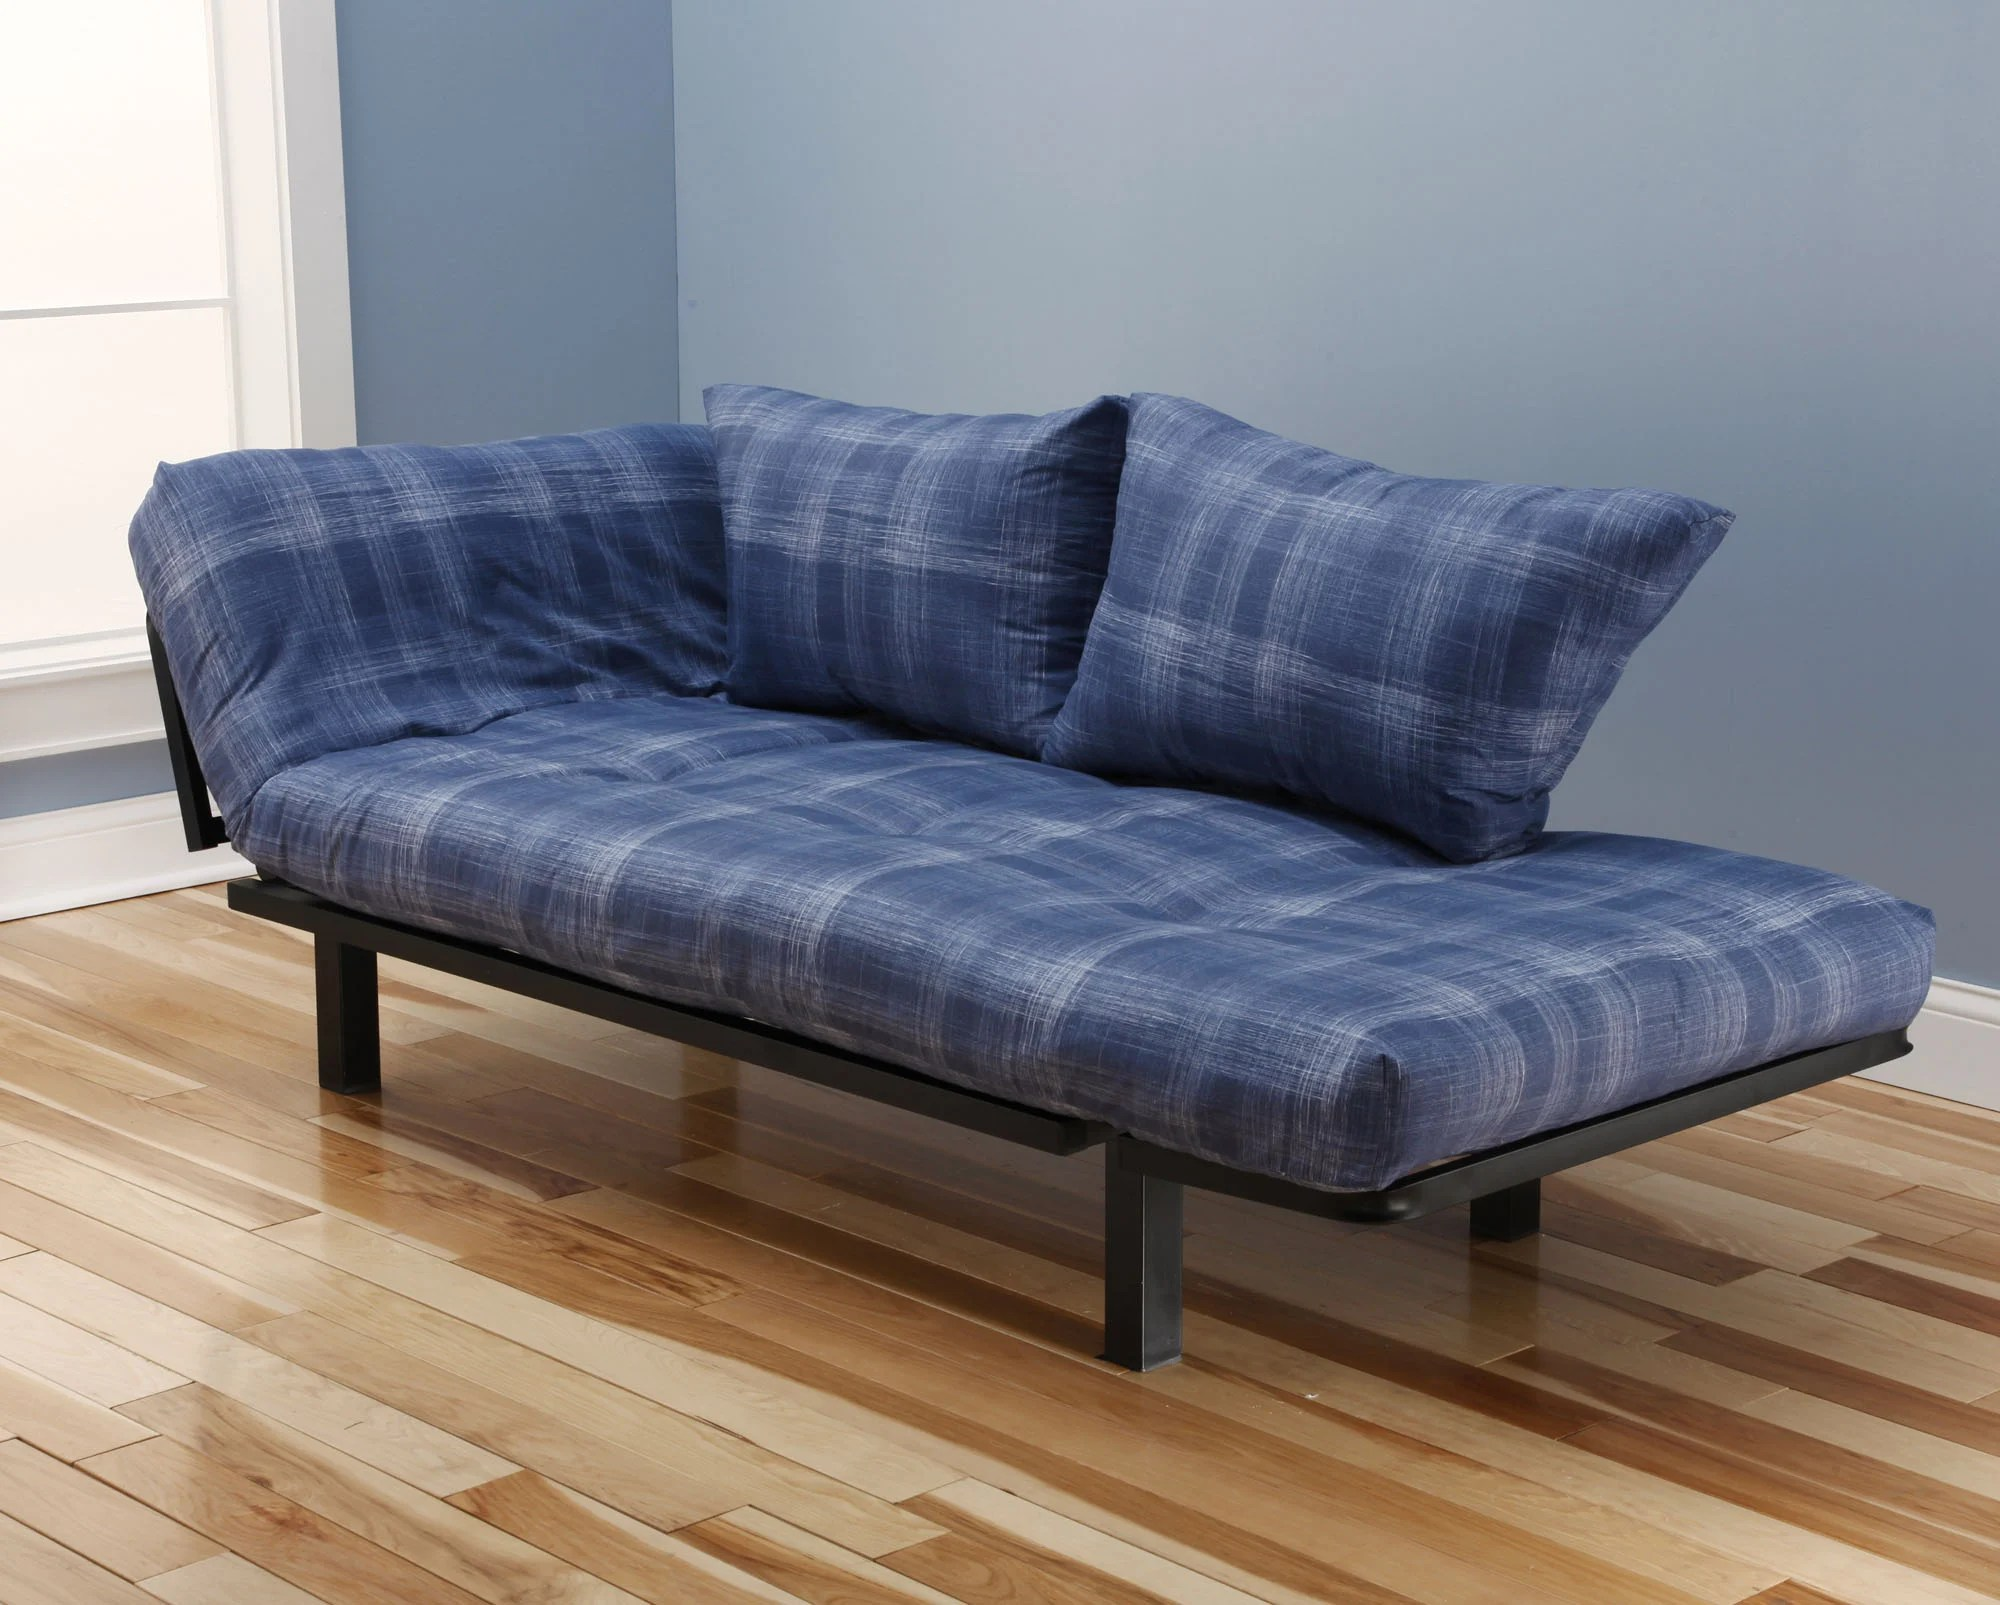 Daybed Frame Spacely Futon Daybed/lounger With Mattress Dungaree By Kodiak